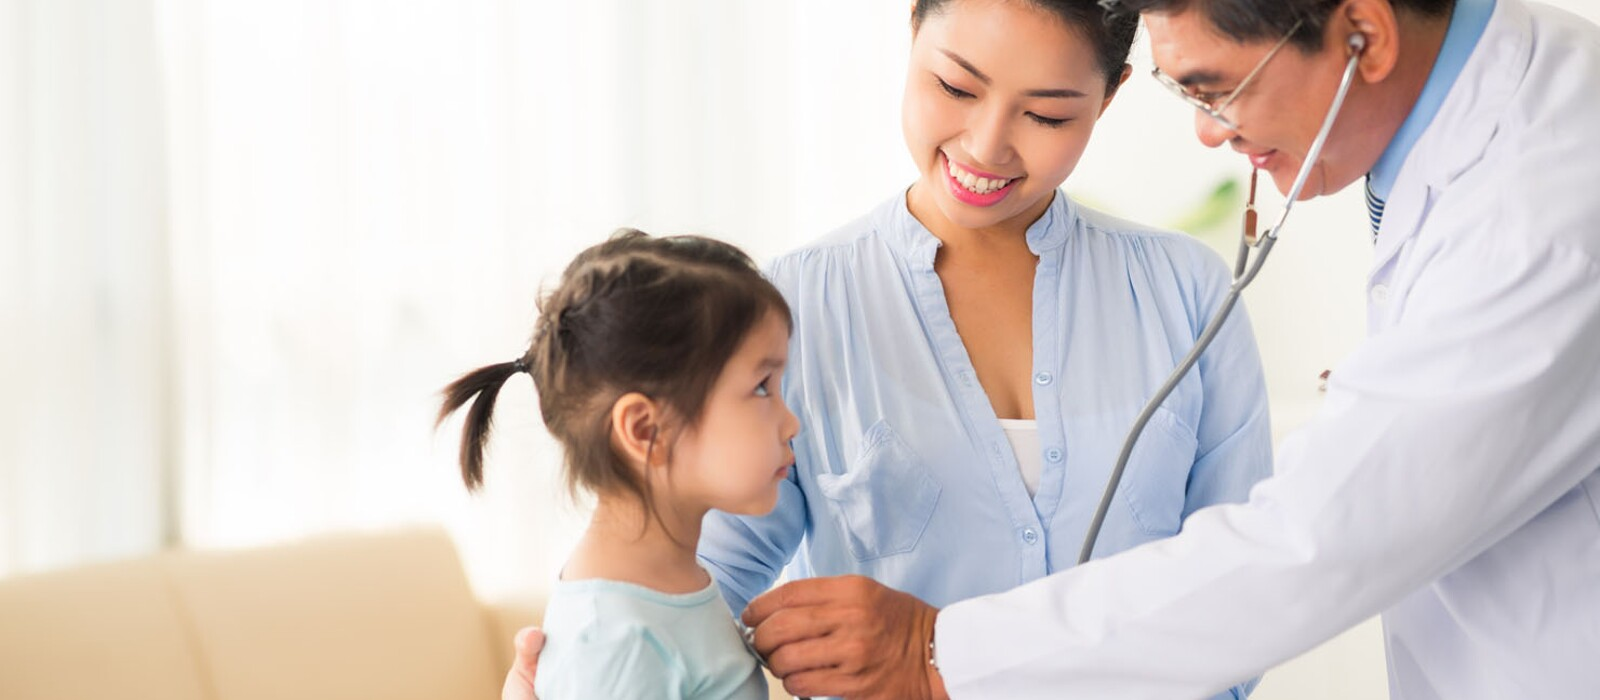 How to Help Your Child Overcome Doctor or Dentist Phobia